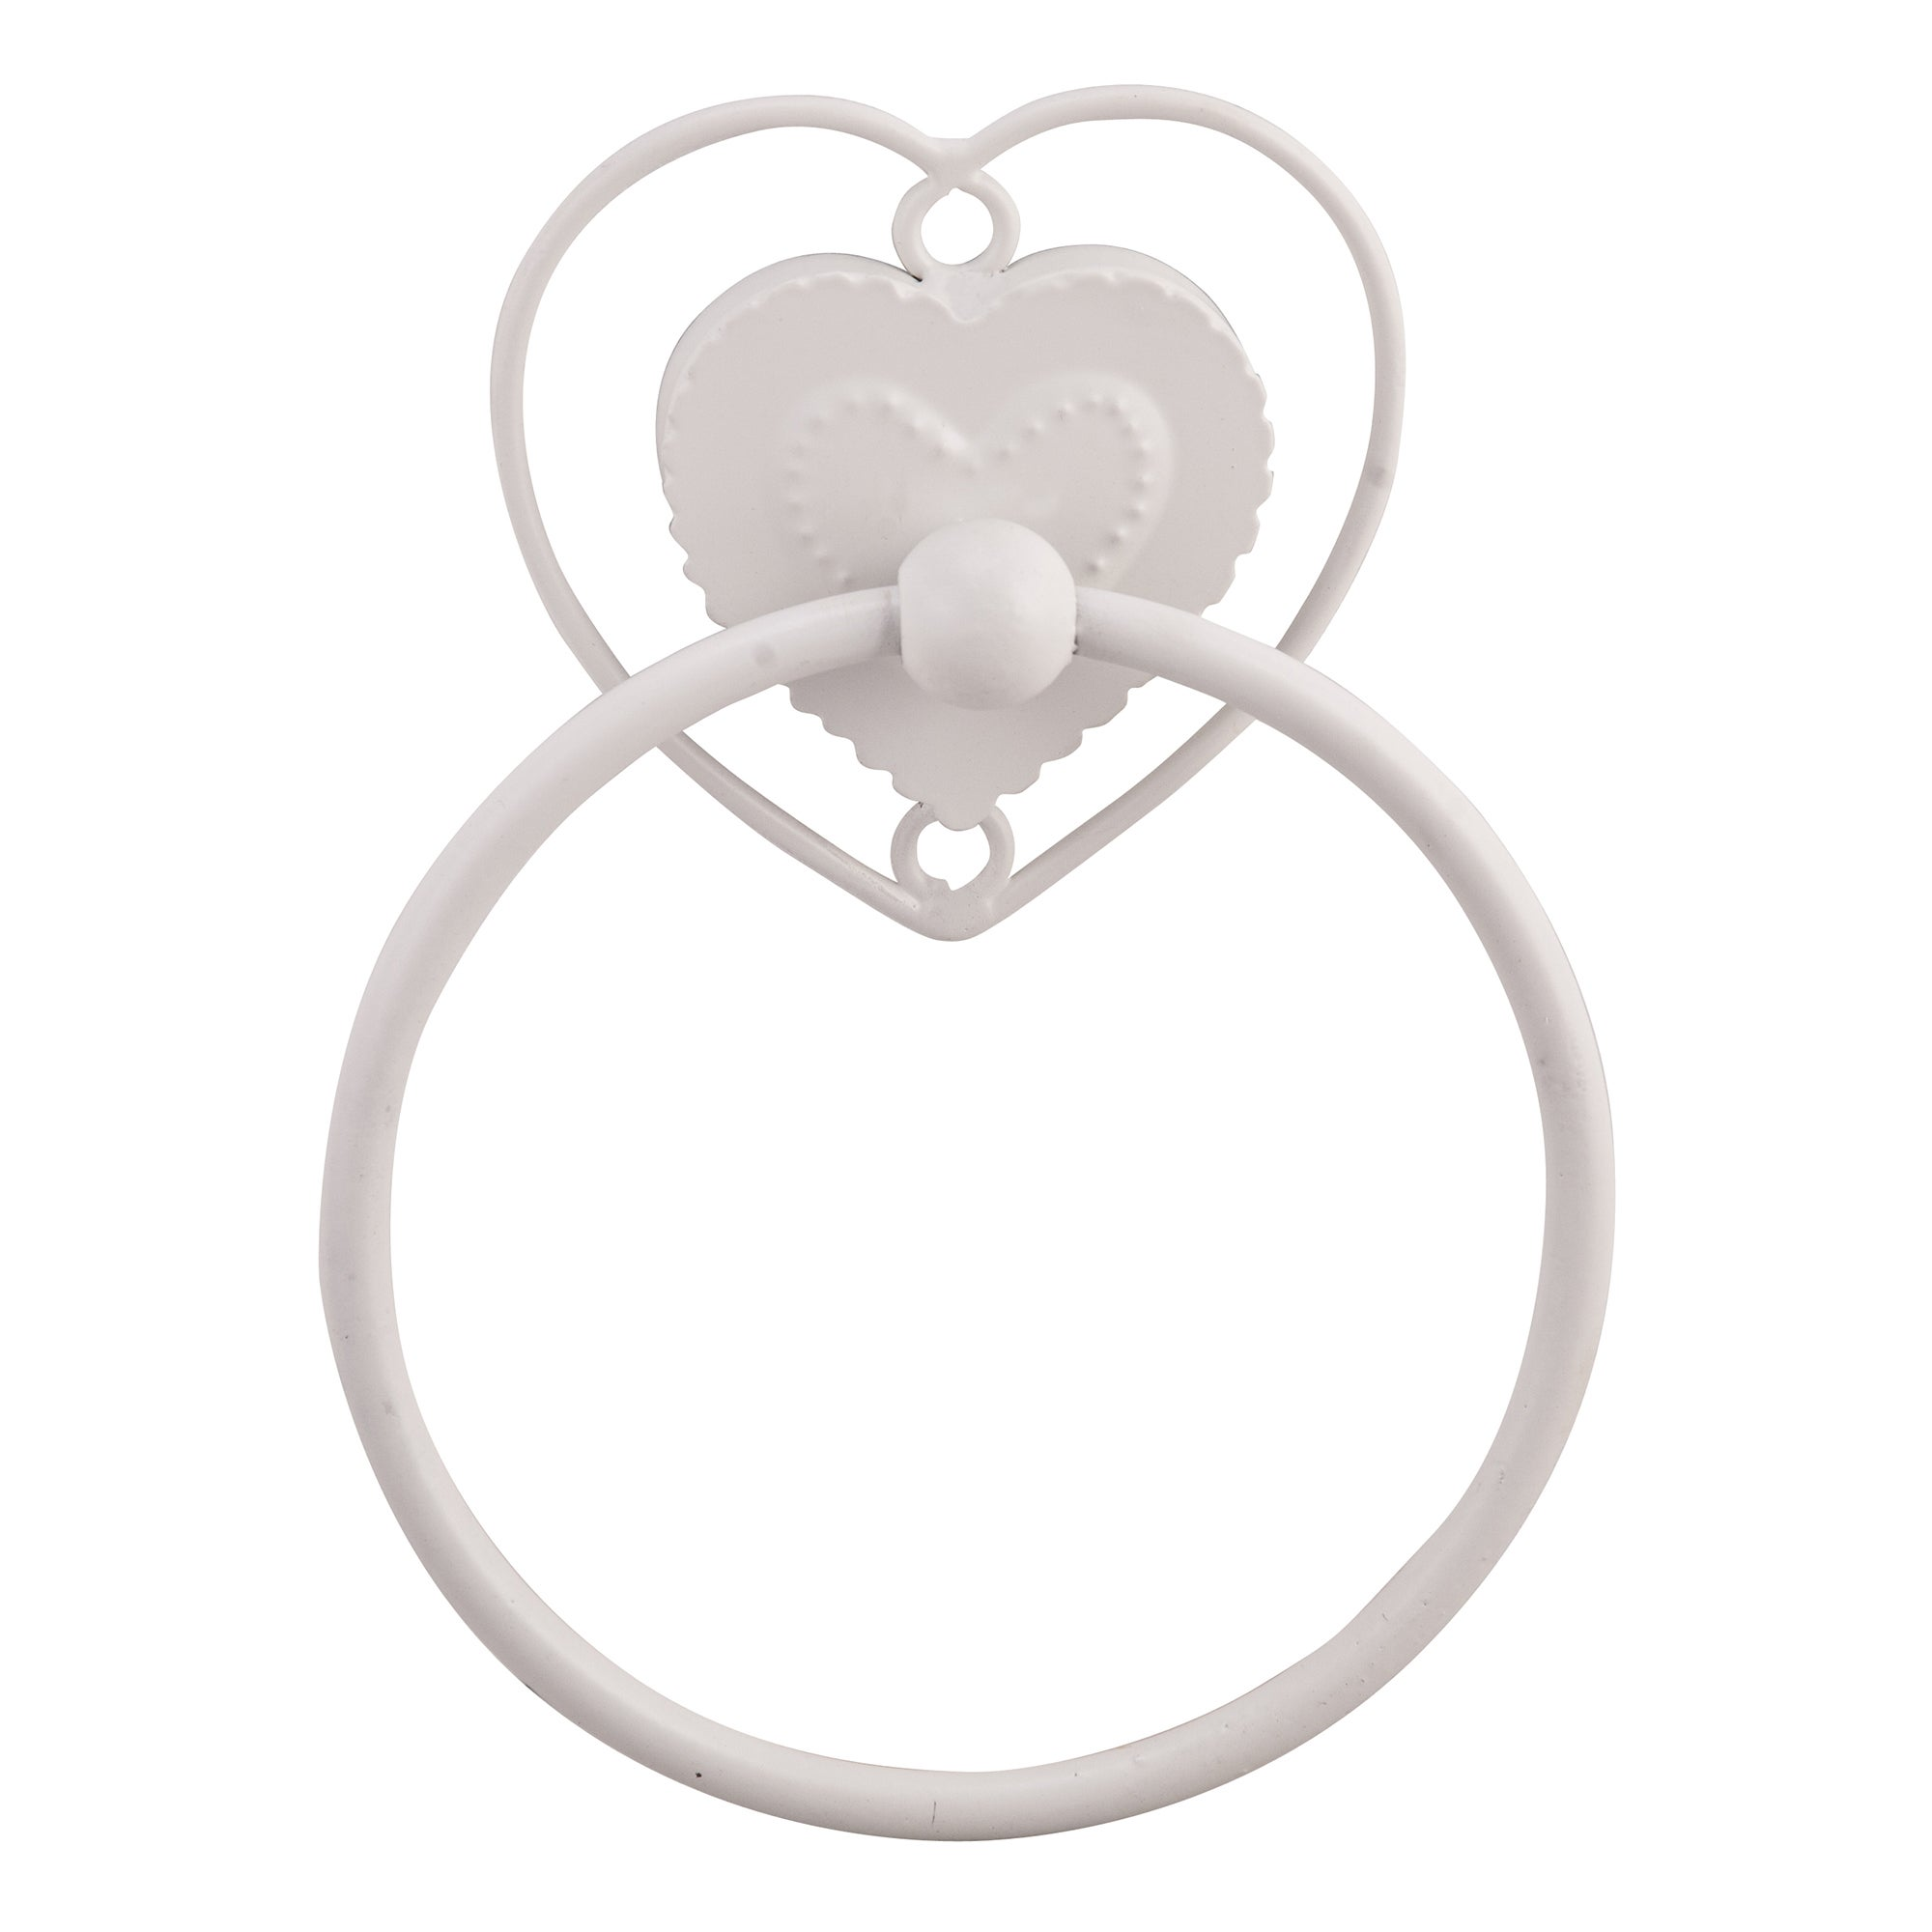 Vintage Heart Towel Ring